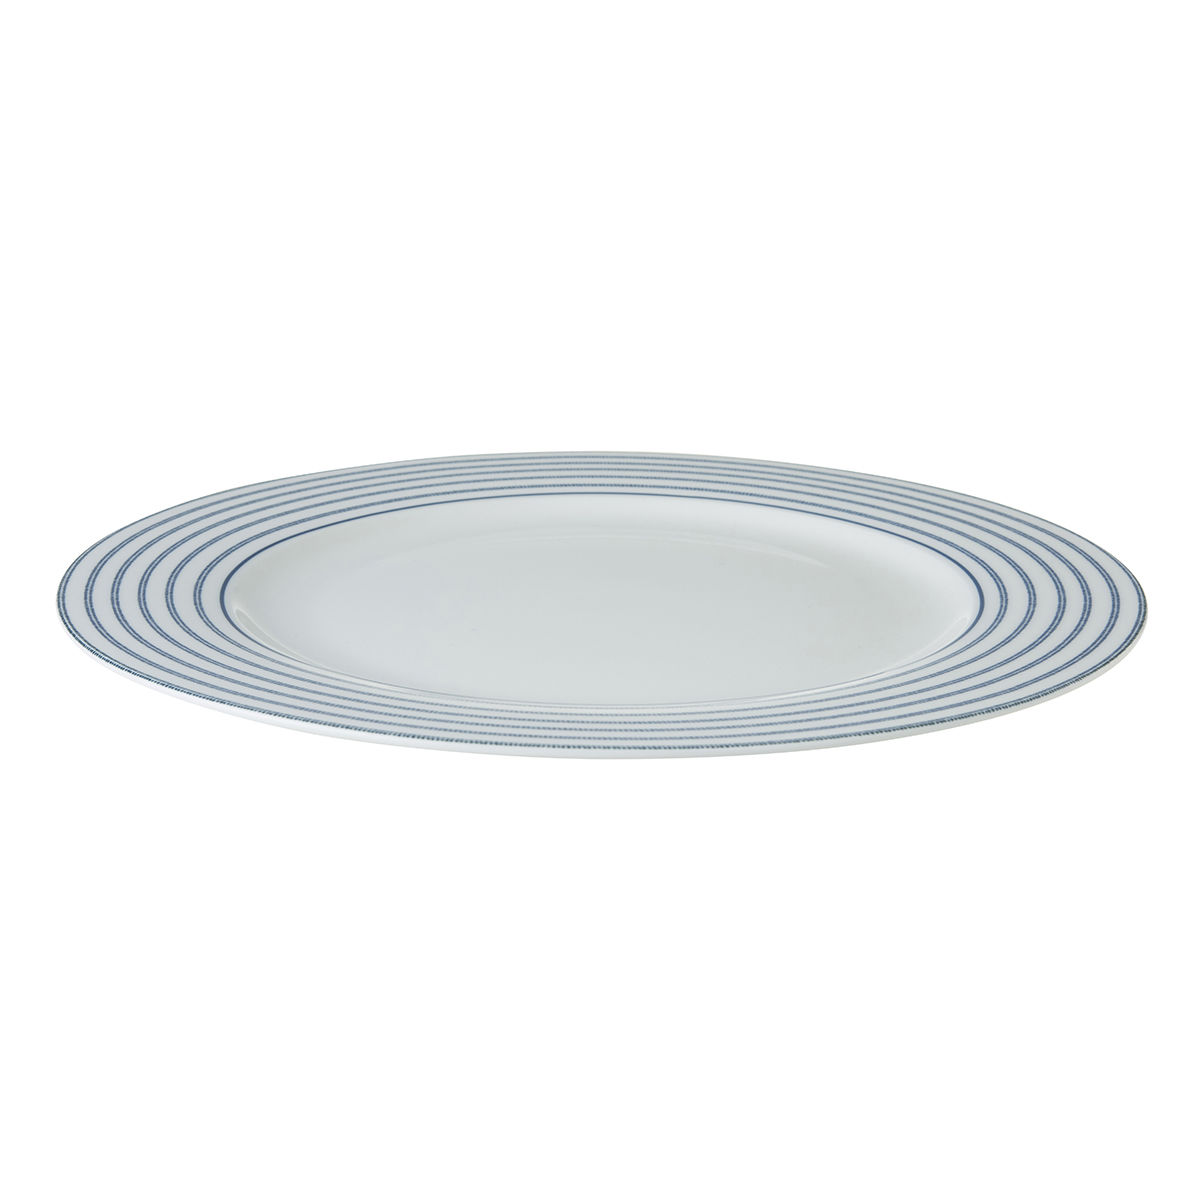 "Laura Ashley 10.5"" Plate Candy Stripe - product images  of"